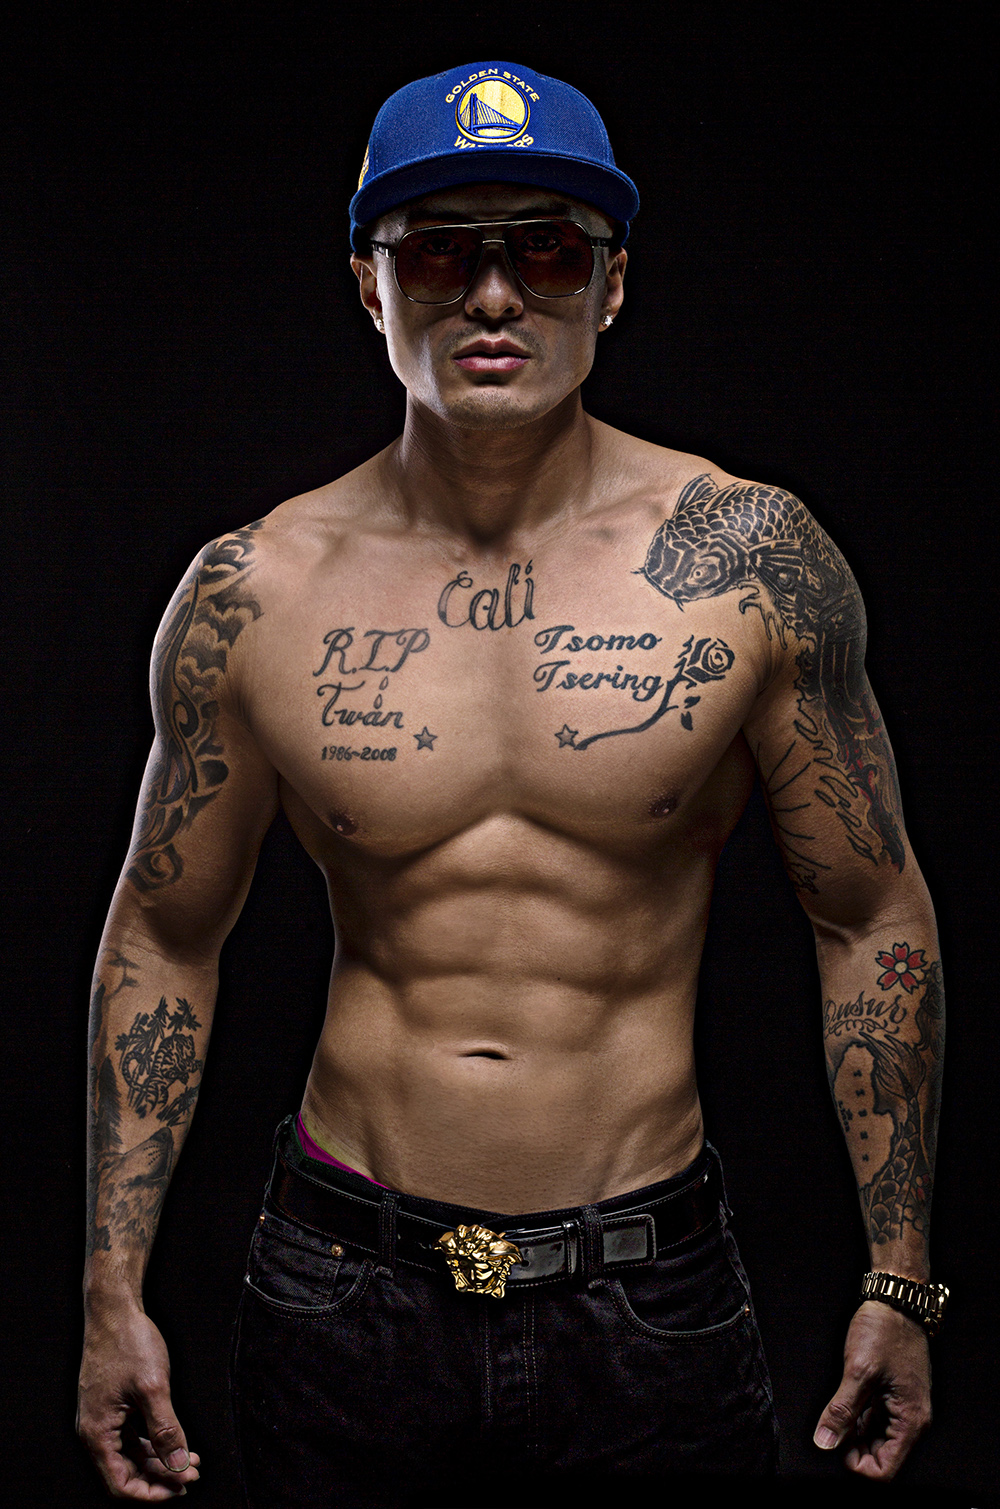 Mike_Tsering_Fitness_Portrait_01_WEB.jpg